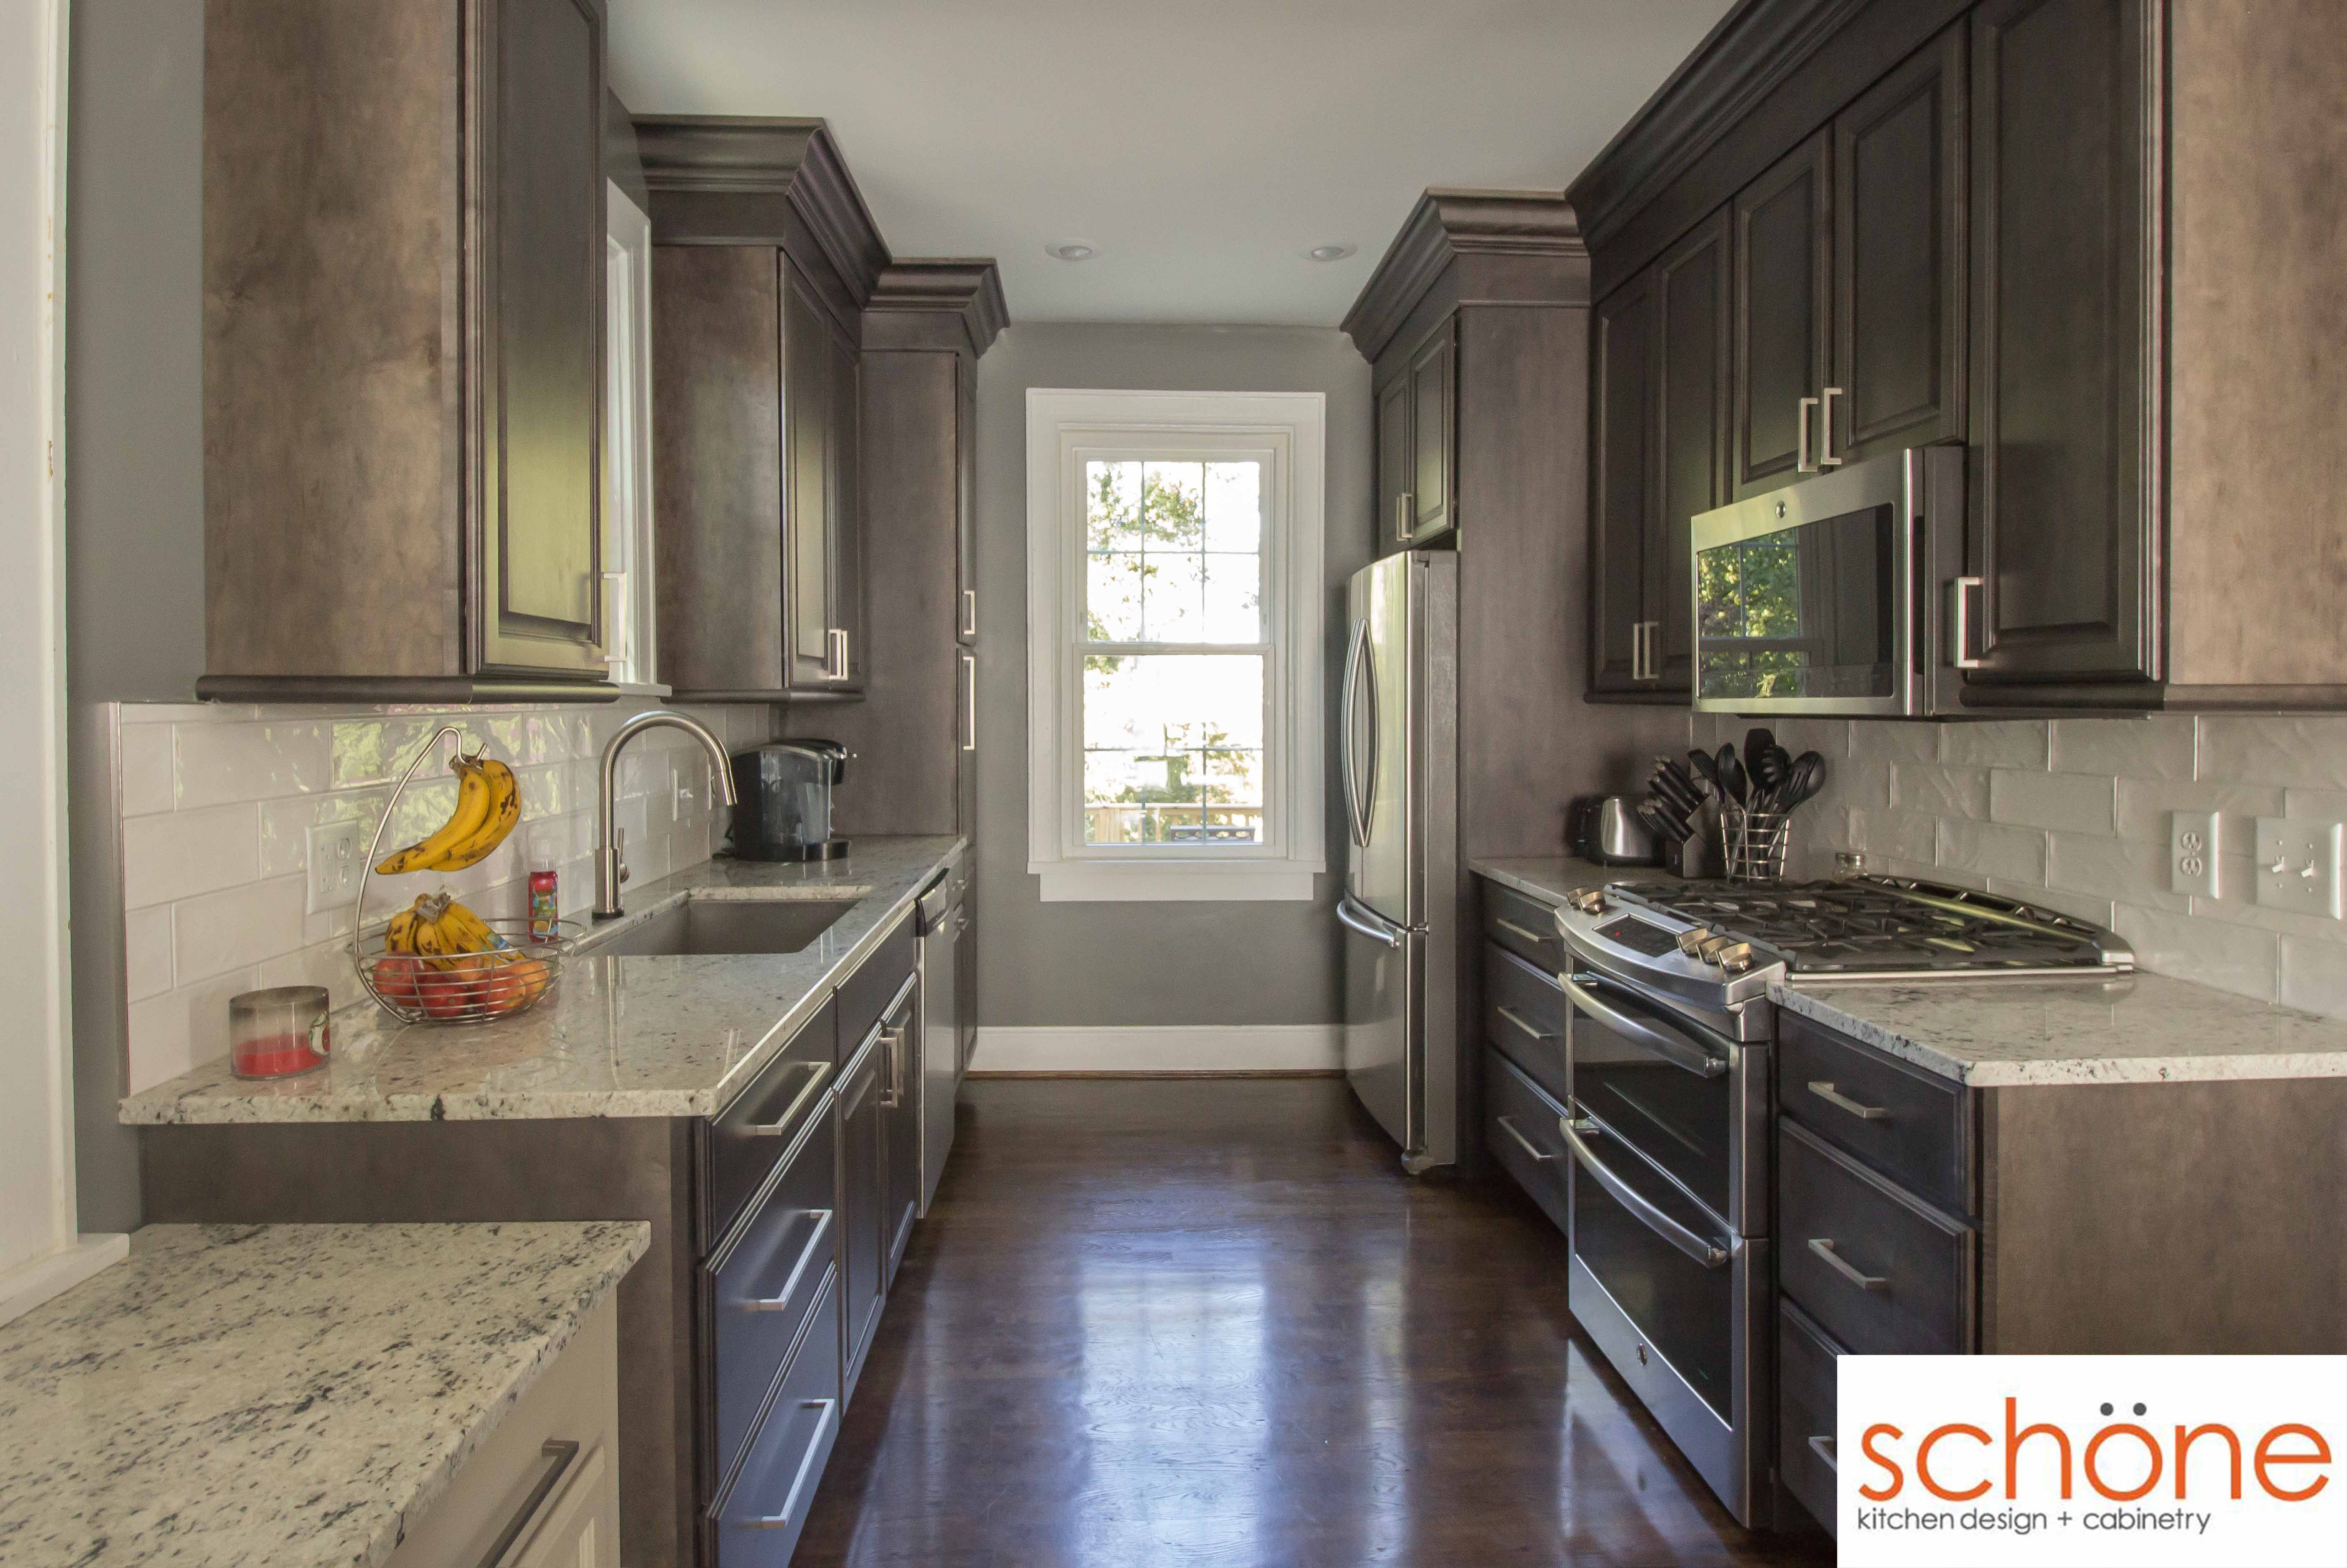 Take A Tour Of This Beautiful Space We Redid That Didn T Break The Clients Bank This Warm And Inviting Kitchen Custom Kitchens Design Kitchen Design Kitchen